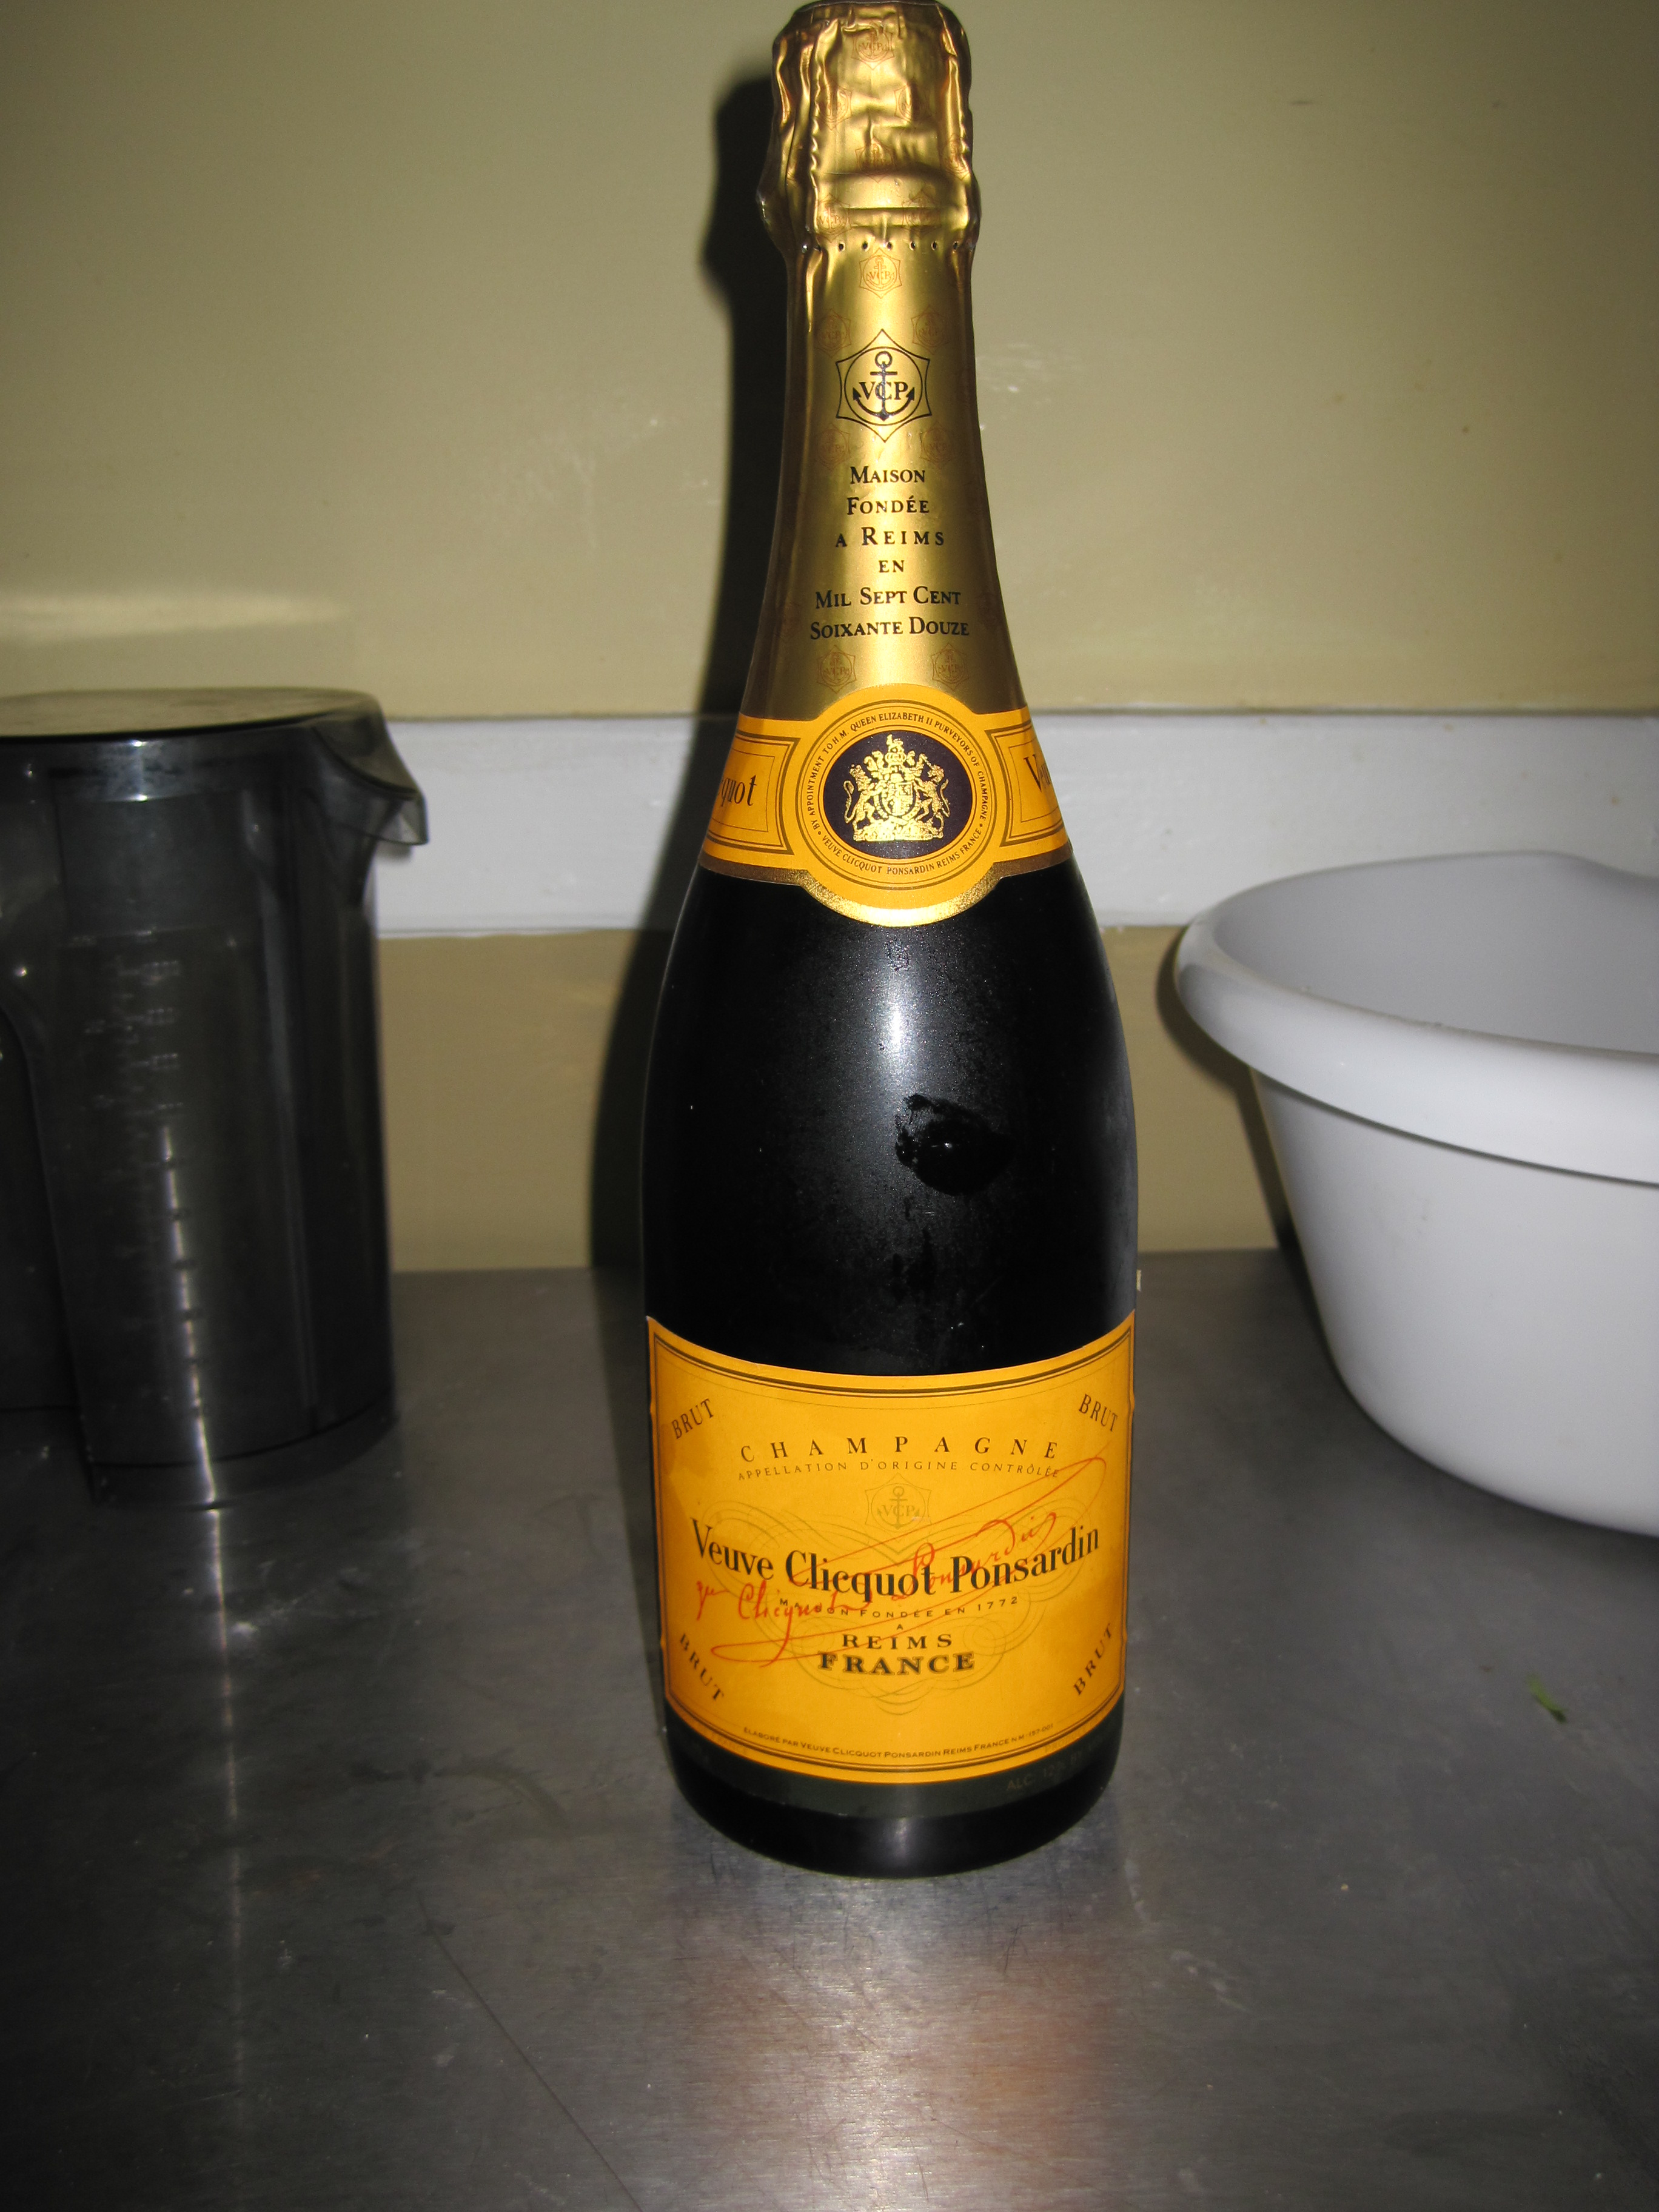 Mimosas and coq au champagne oui oui fashionably for How many mimosas per bottle of champagne